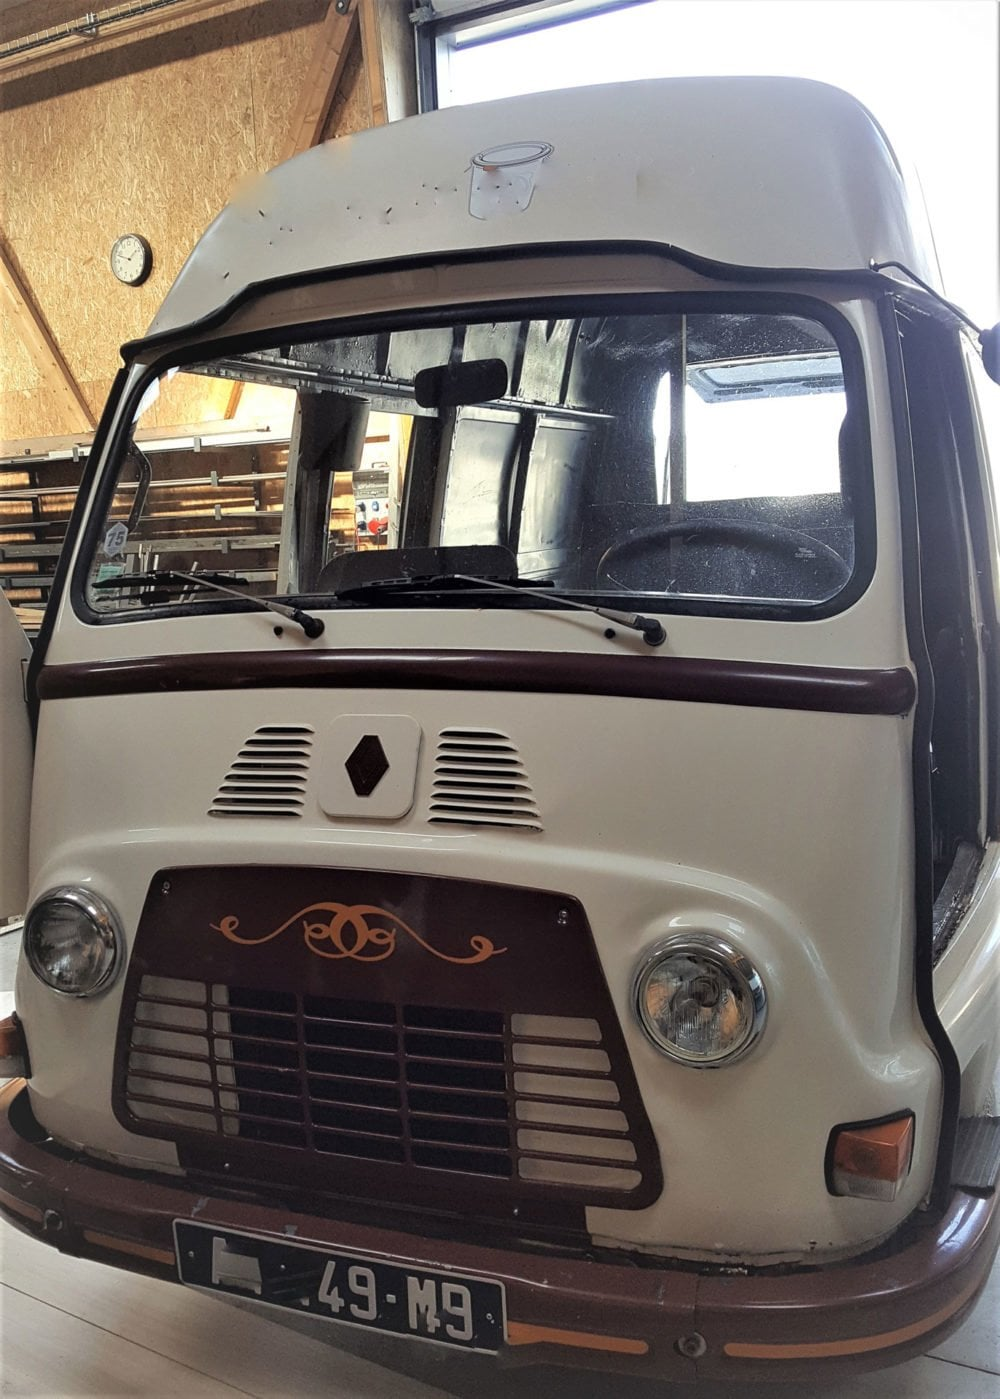 restauration renault estafette 1975 12